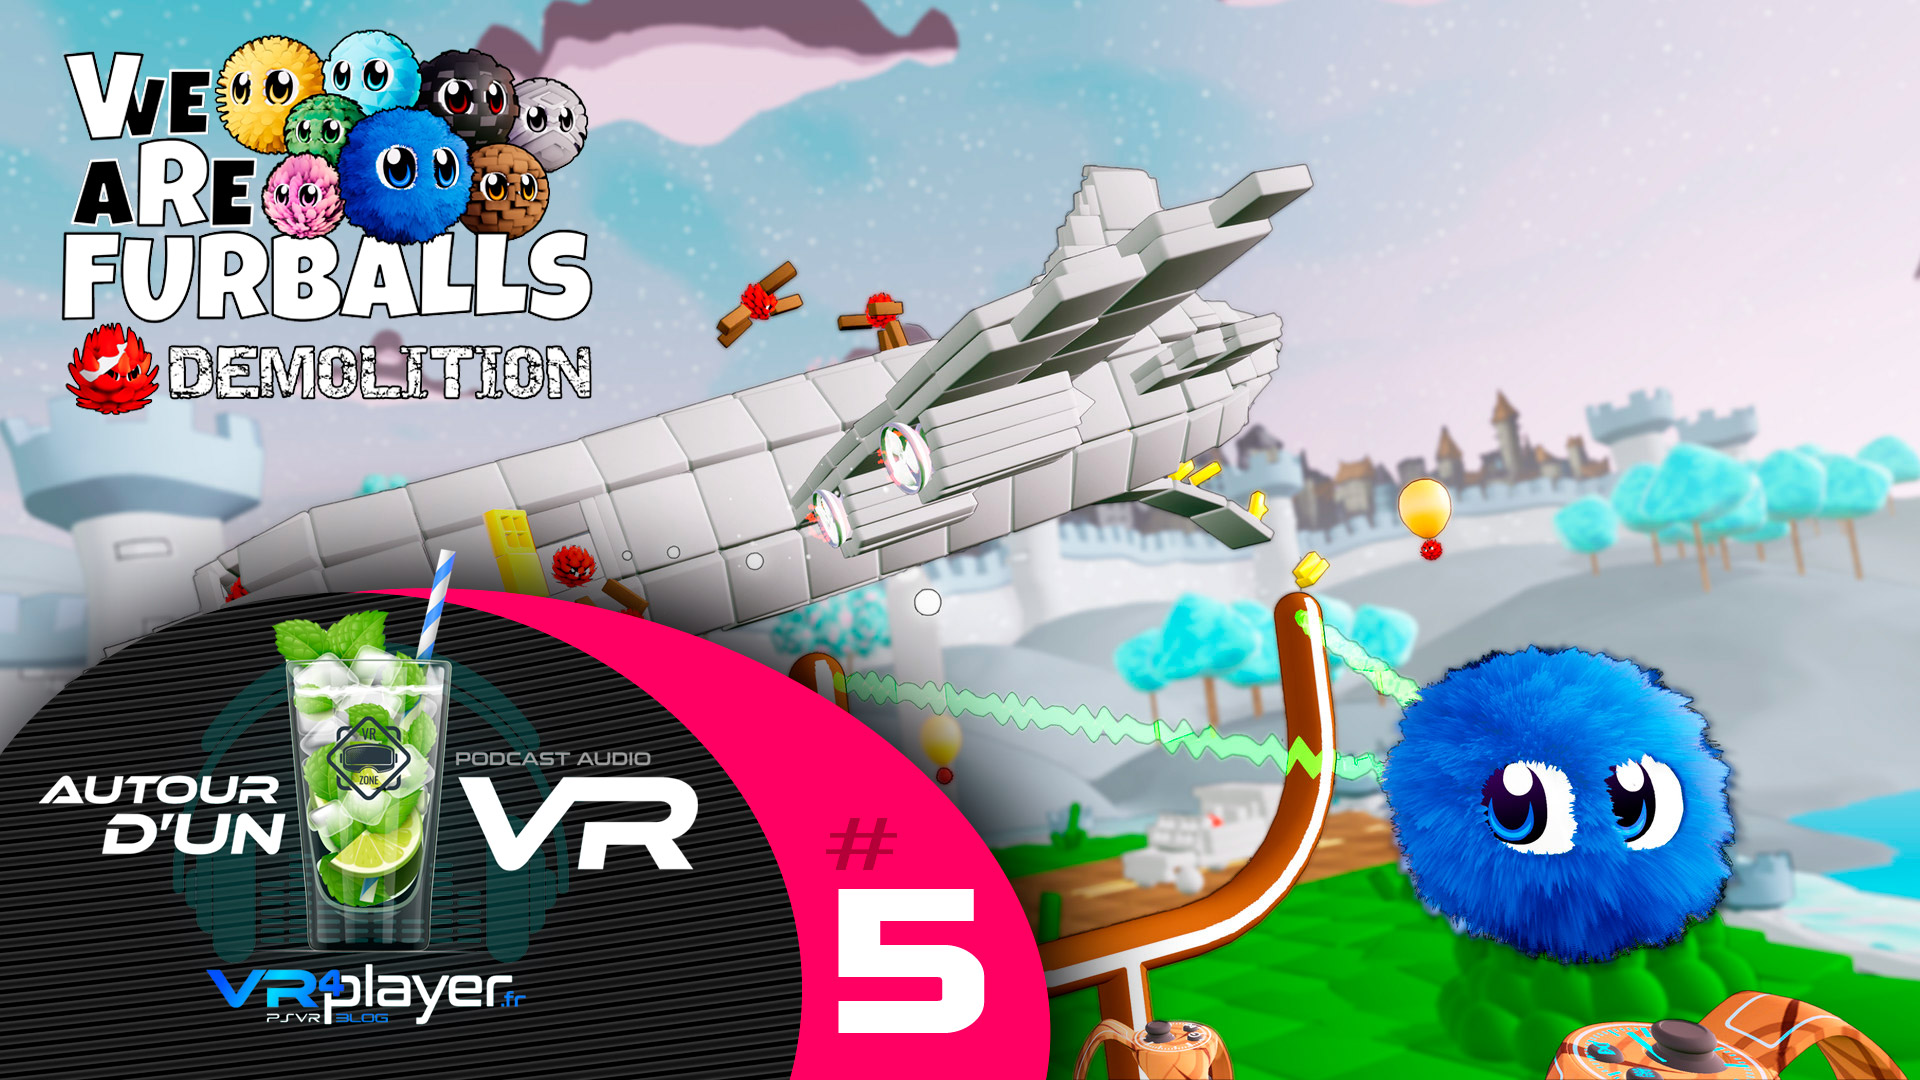 Podcast - Autour d'un VR VR4Player #5 VR FURBALLS